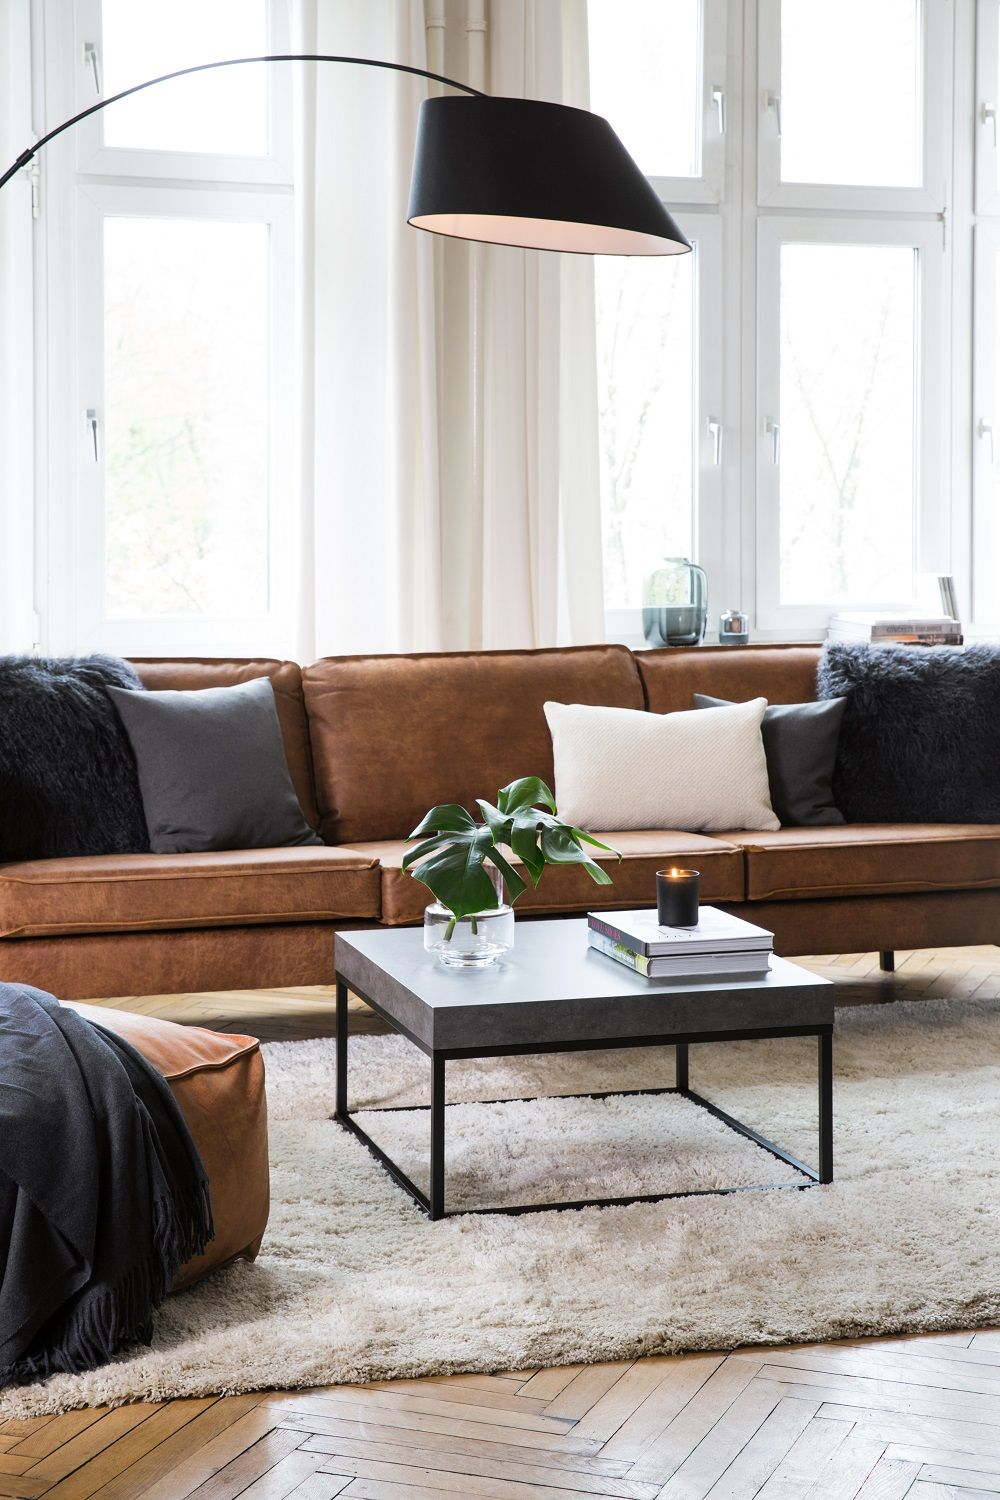 Cognac Ledercouch So Funktioniert Der Look »black & Brown« : Trendy Und Doch